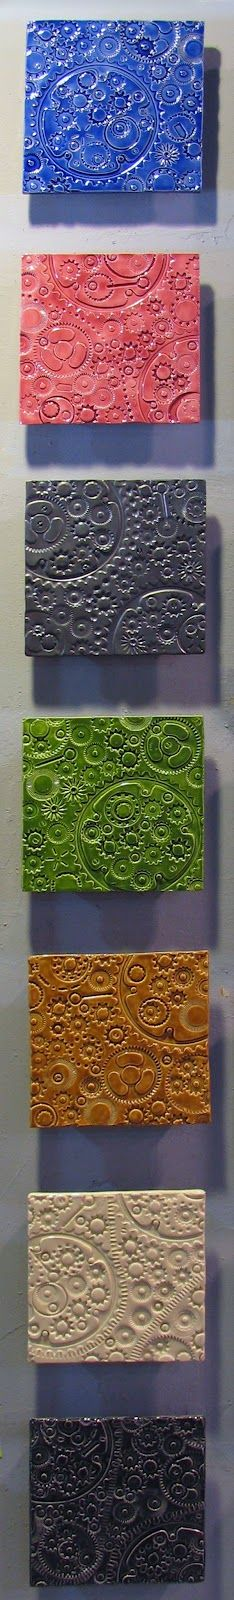 Candy-Colored Gears - ceramic tile mural wall art by JasonMessingerArt.com